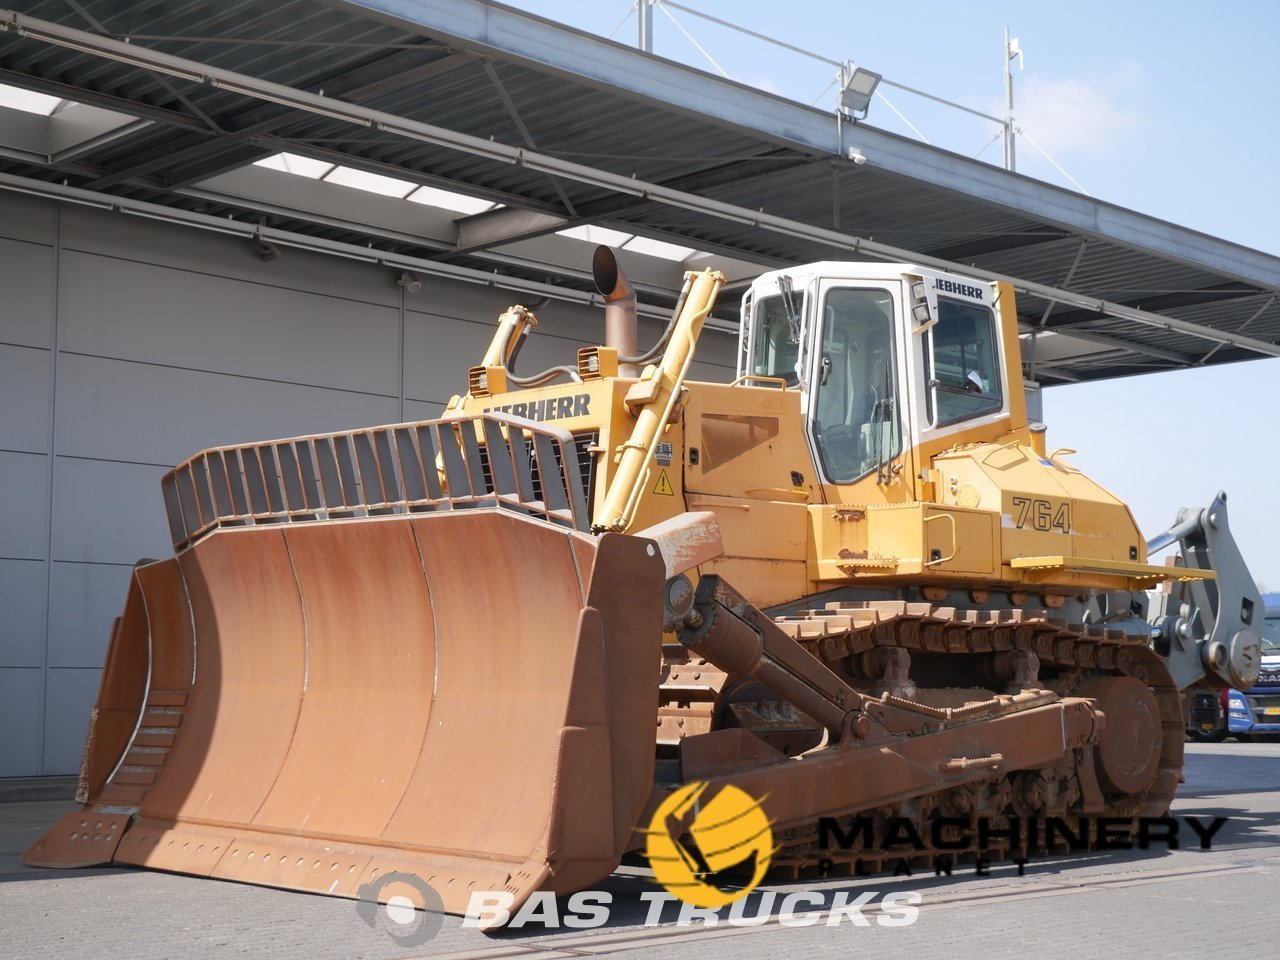 Used-Construction-equipment-Liebherr-764-Track-2007_137962_1-1554107365089_5ca1cbe515c94-1.jpg